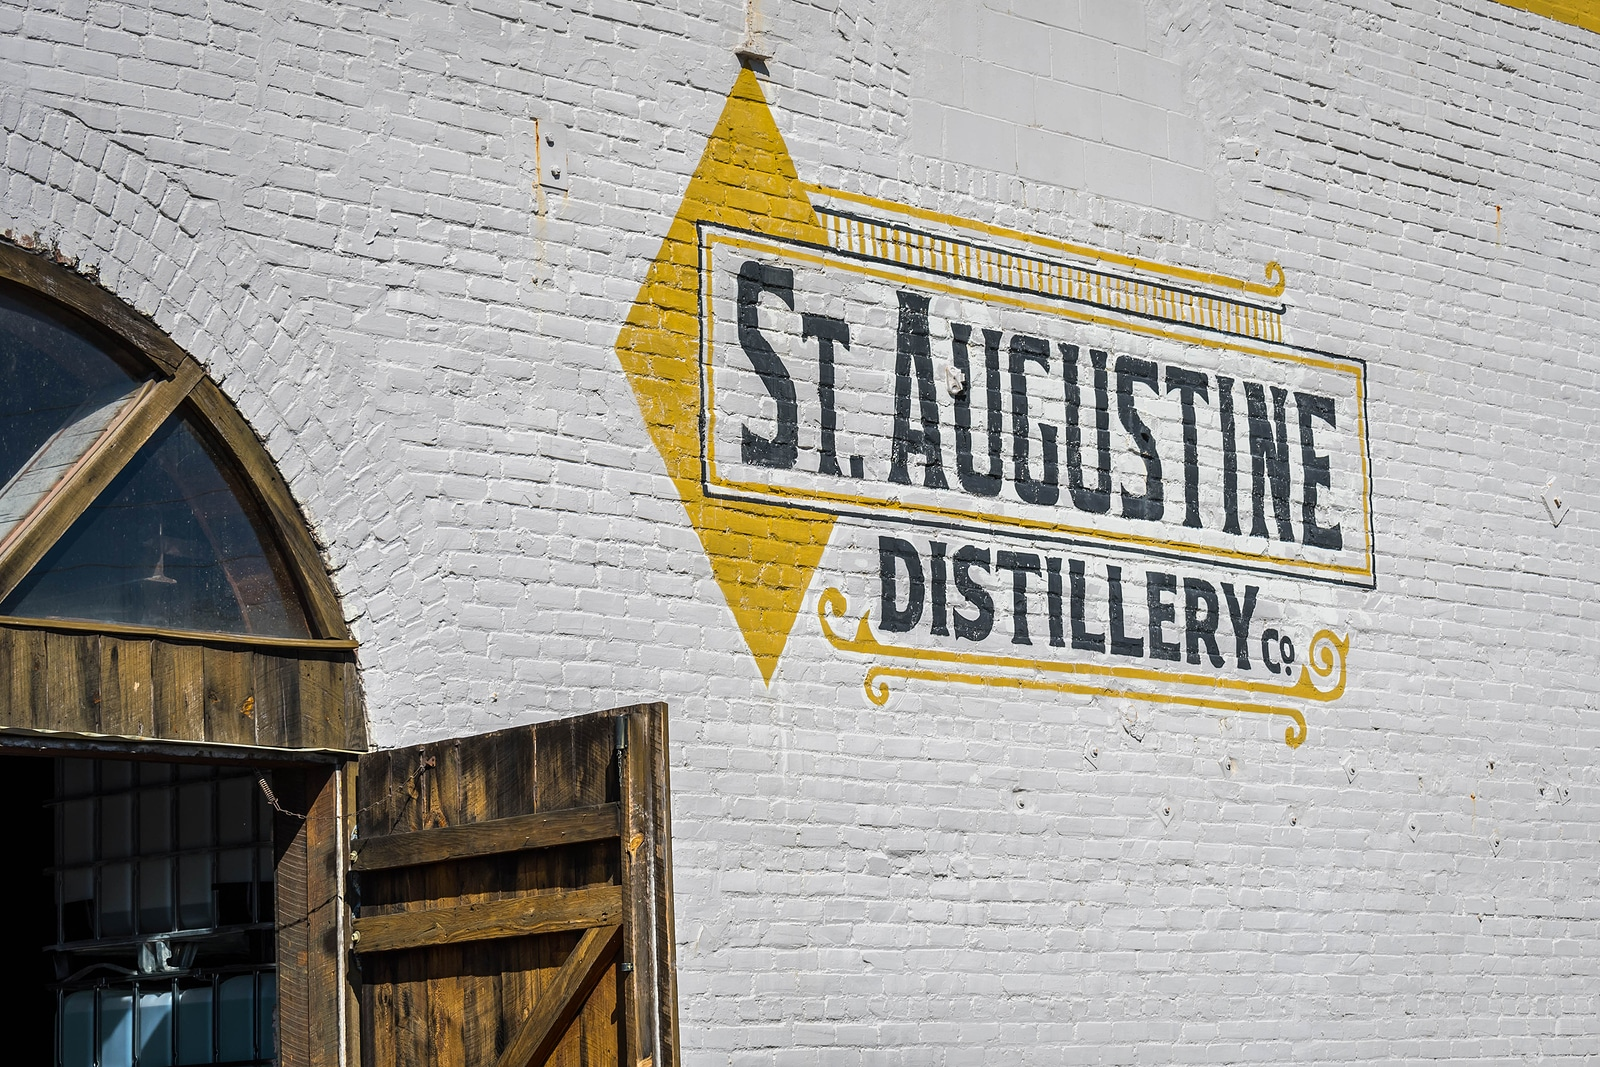 Visit the St. Augustine Distillery